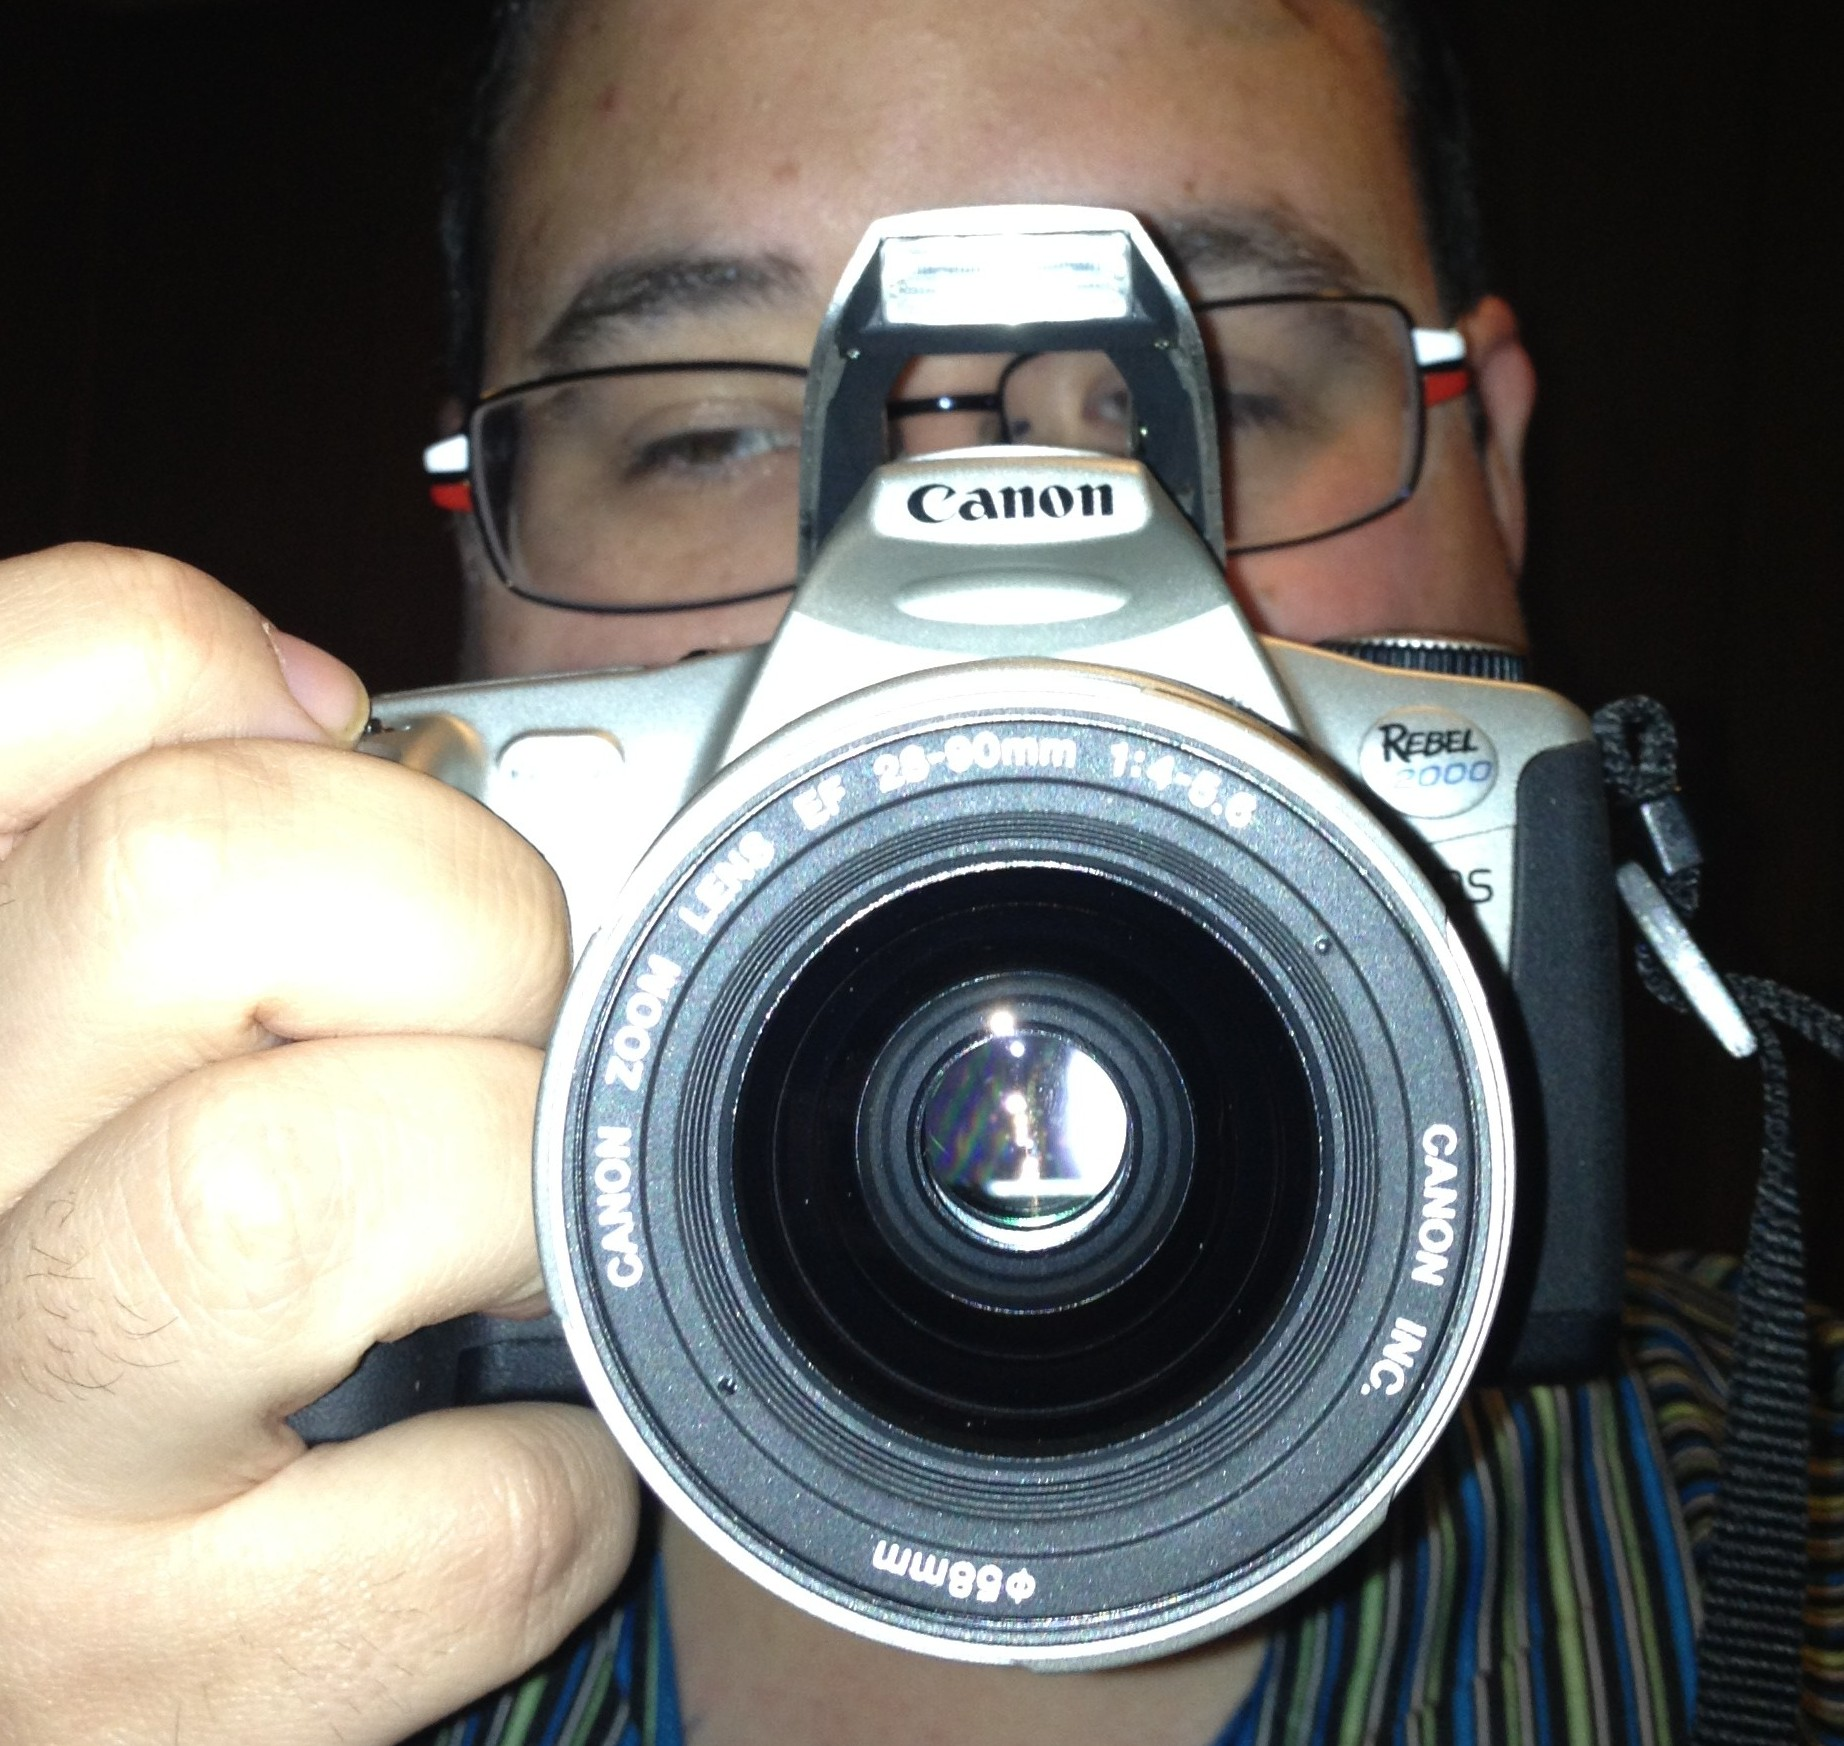 My Canon Rebel 2000 SLR